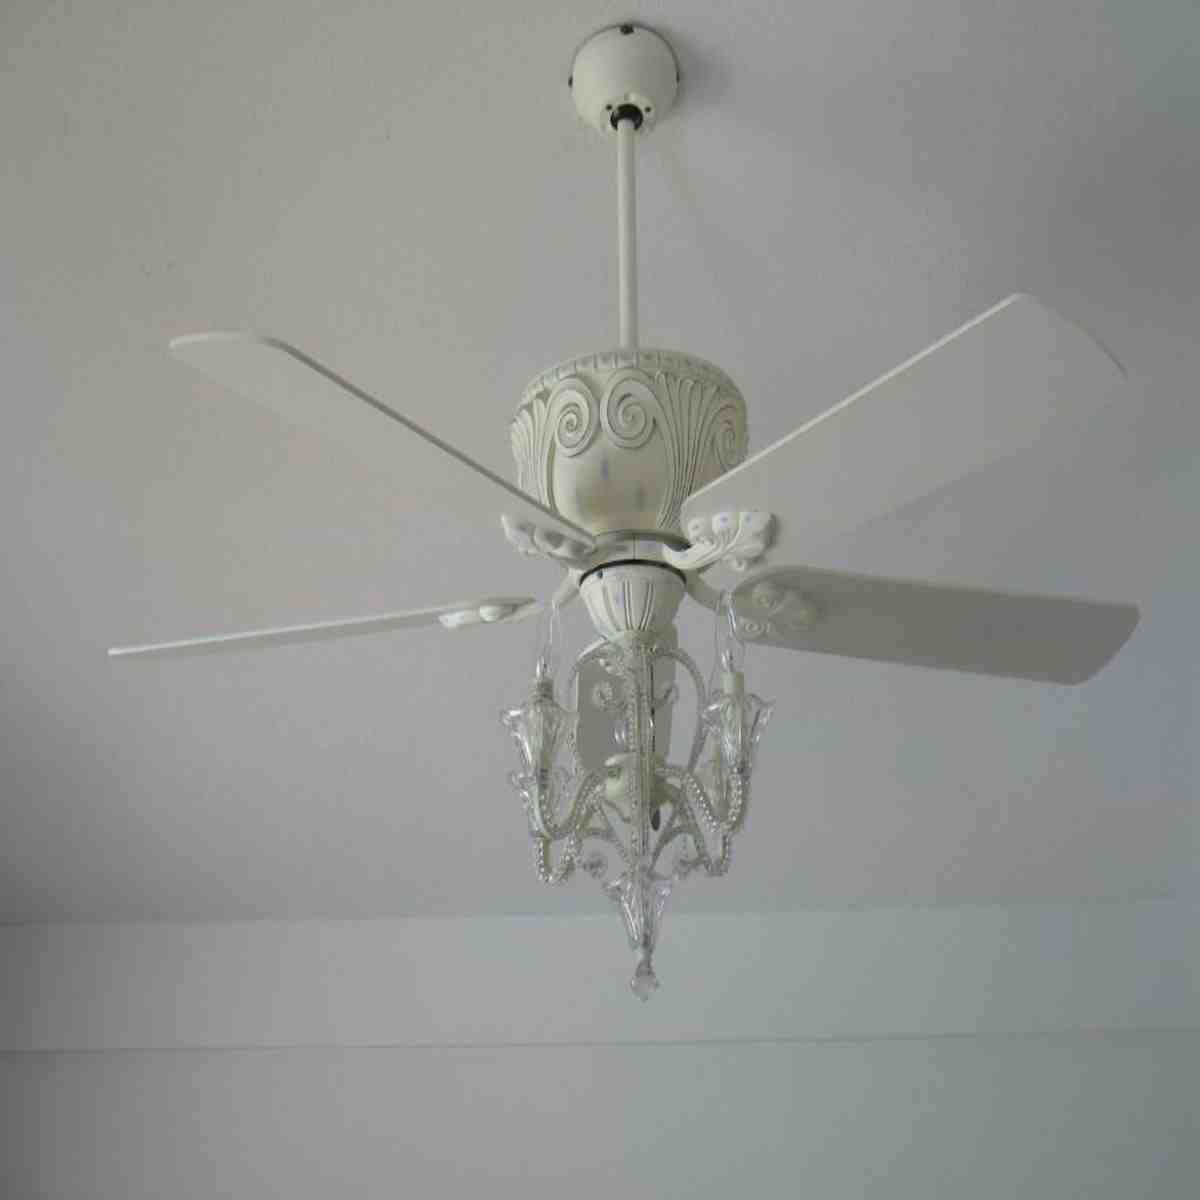 GroB Kronleuchter Deckenventilatoren · Kronleuchter · Decken · Chandelier Light Kit  For Ceiling Fan